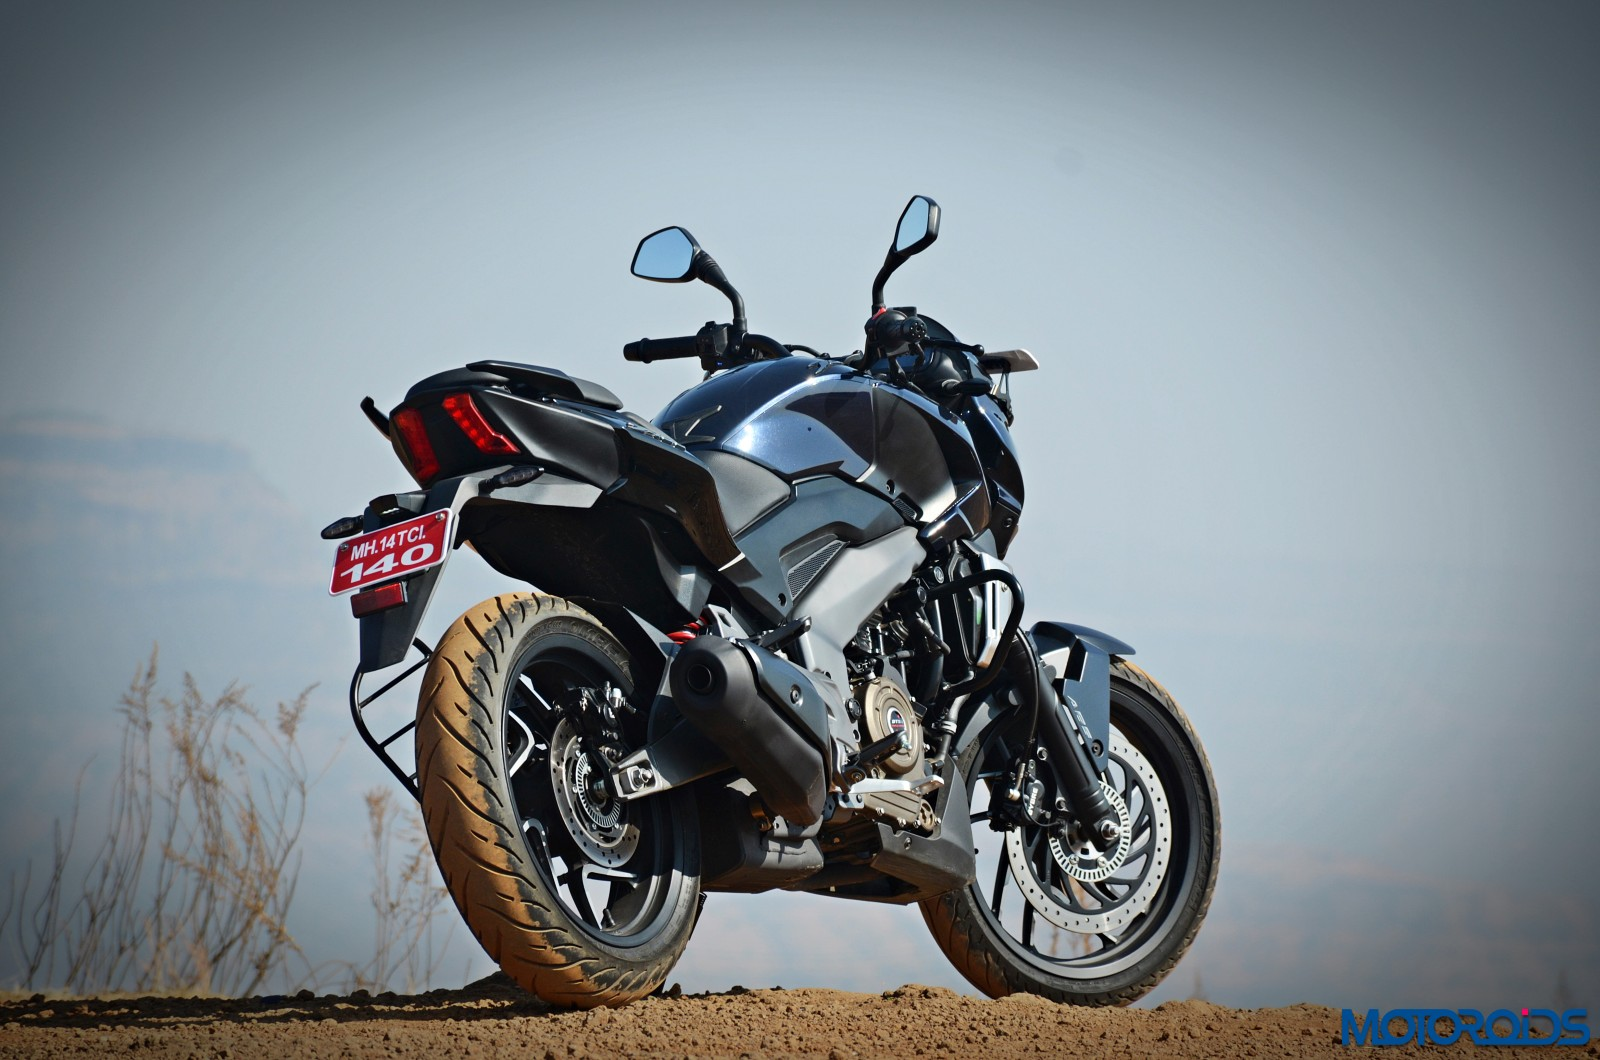 Bajaj-Dominar-400-three-quarter-view-rear